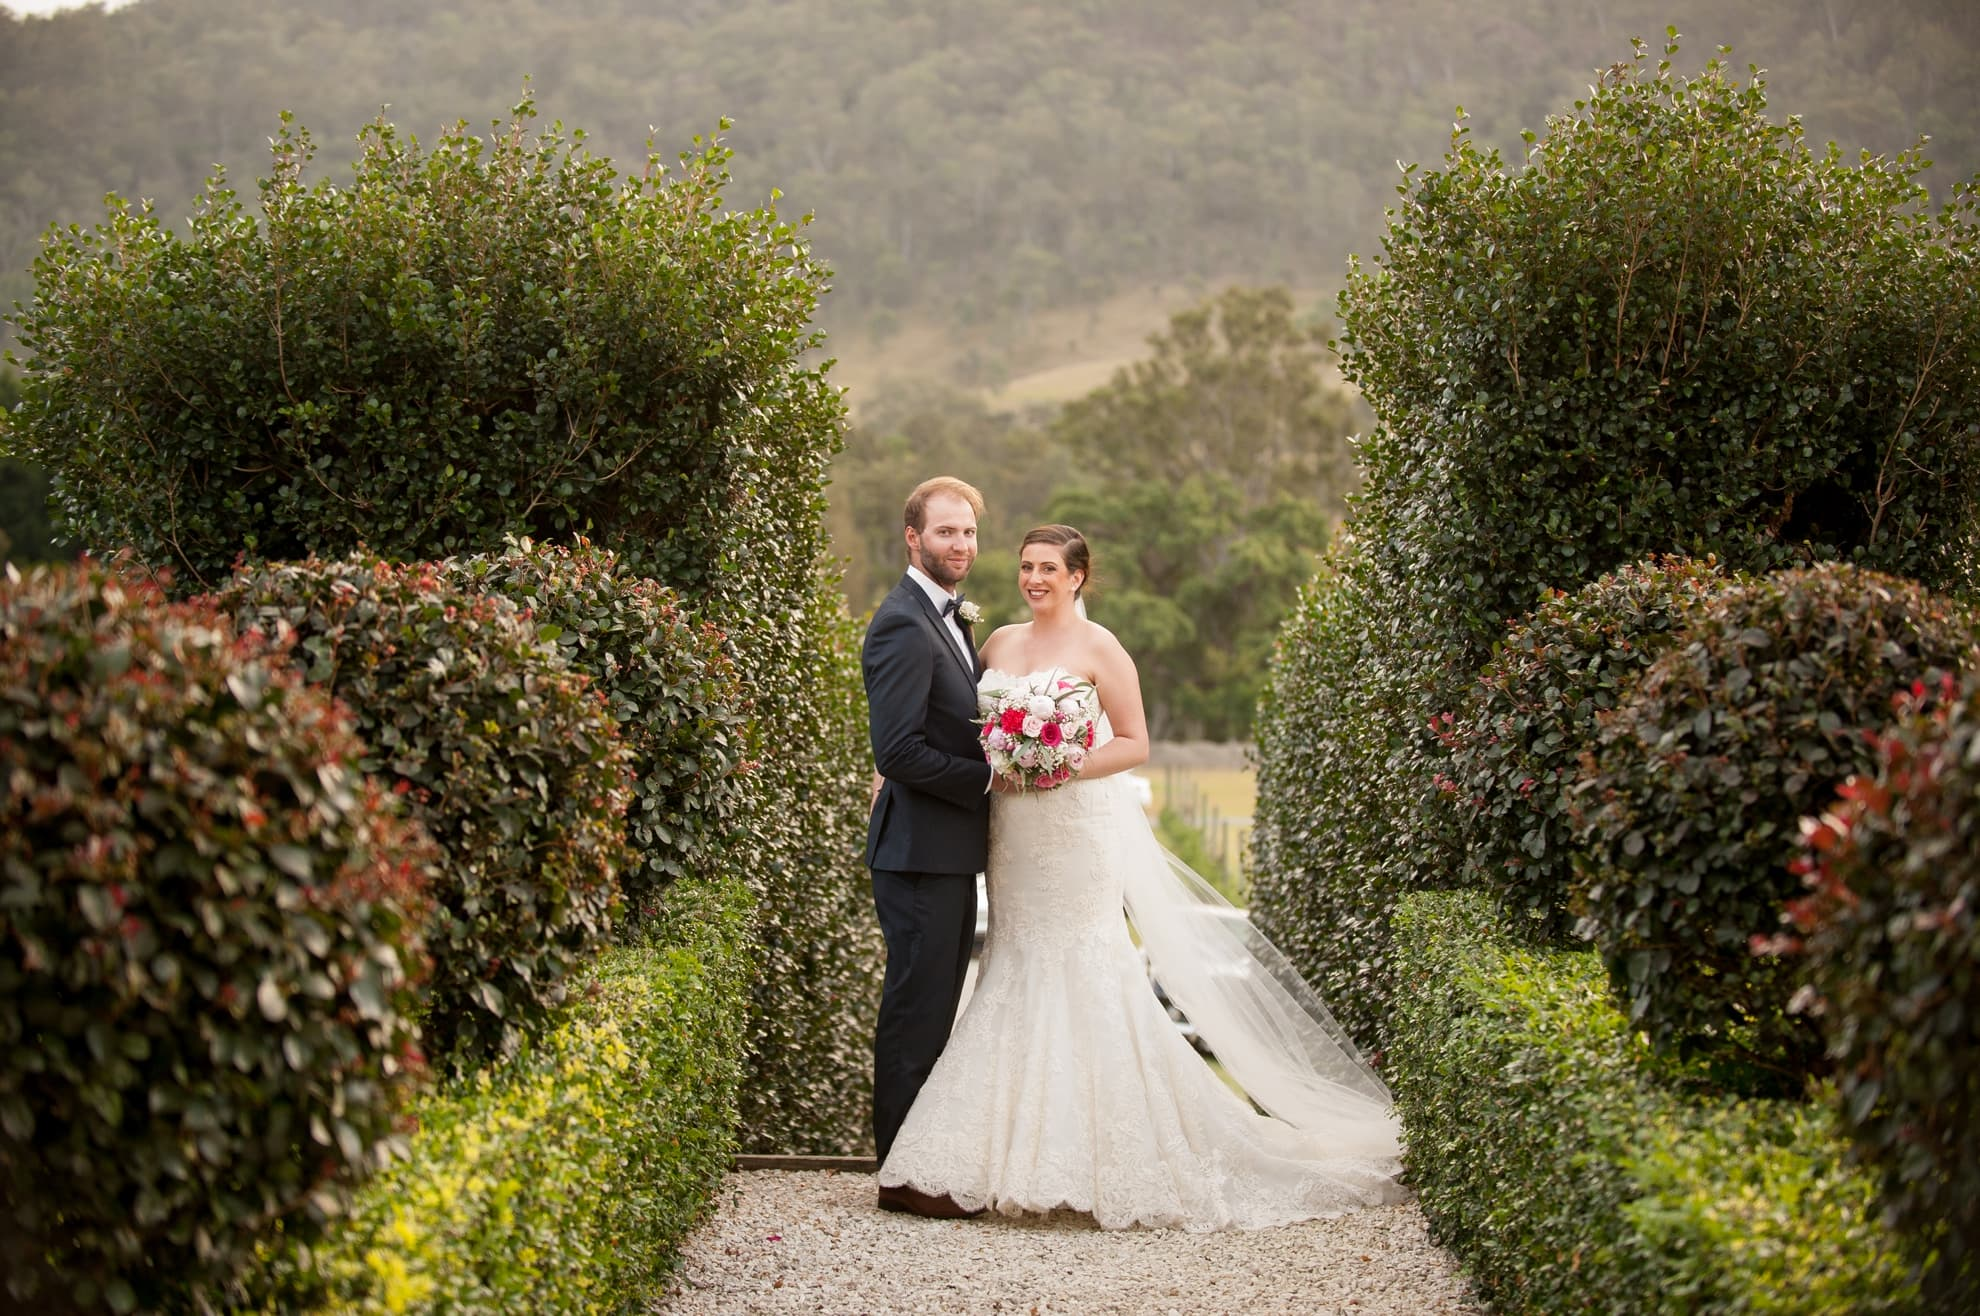 bride-and-groom-looking-at-the-camera-holding-each-other-standing-on-stone-path-with-trees-surrounding-them